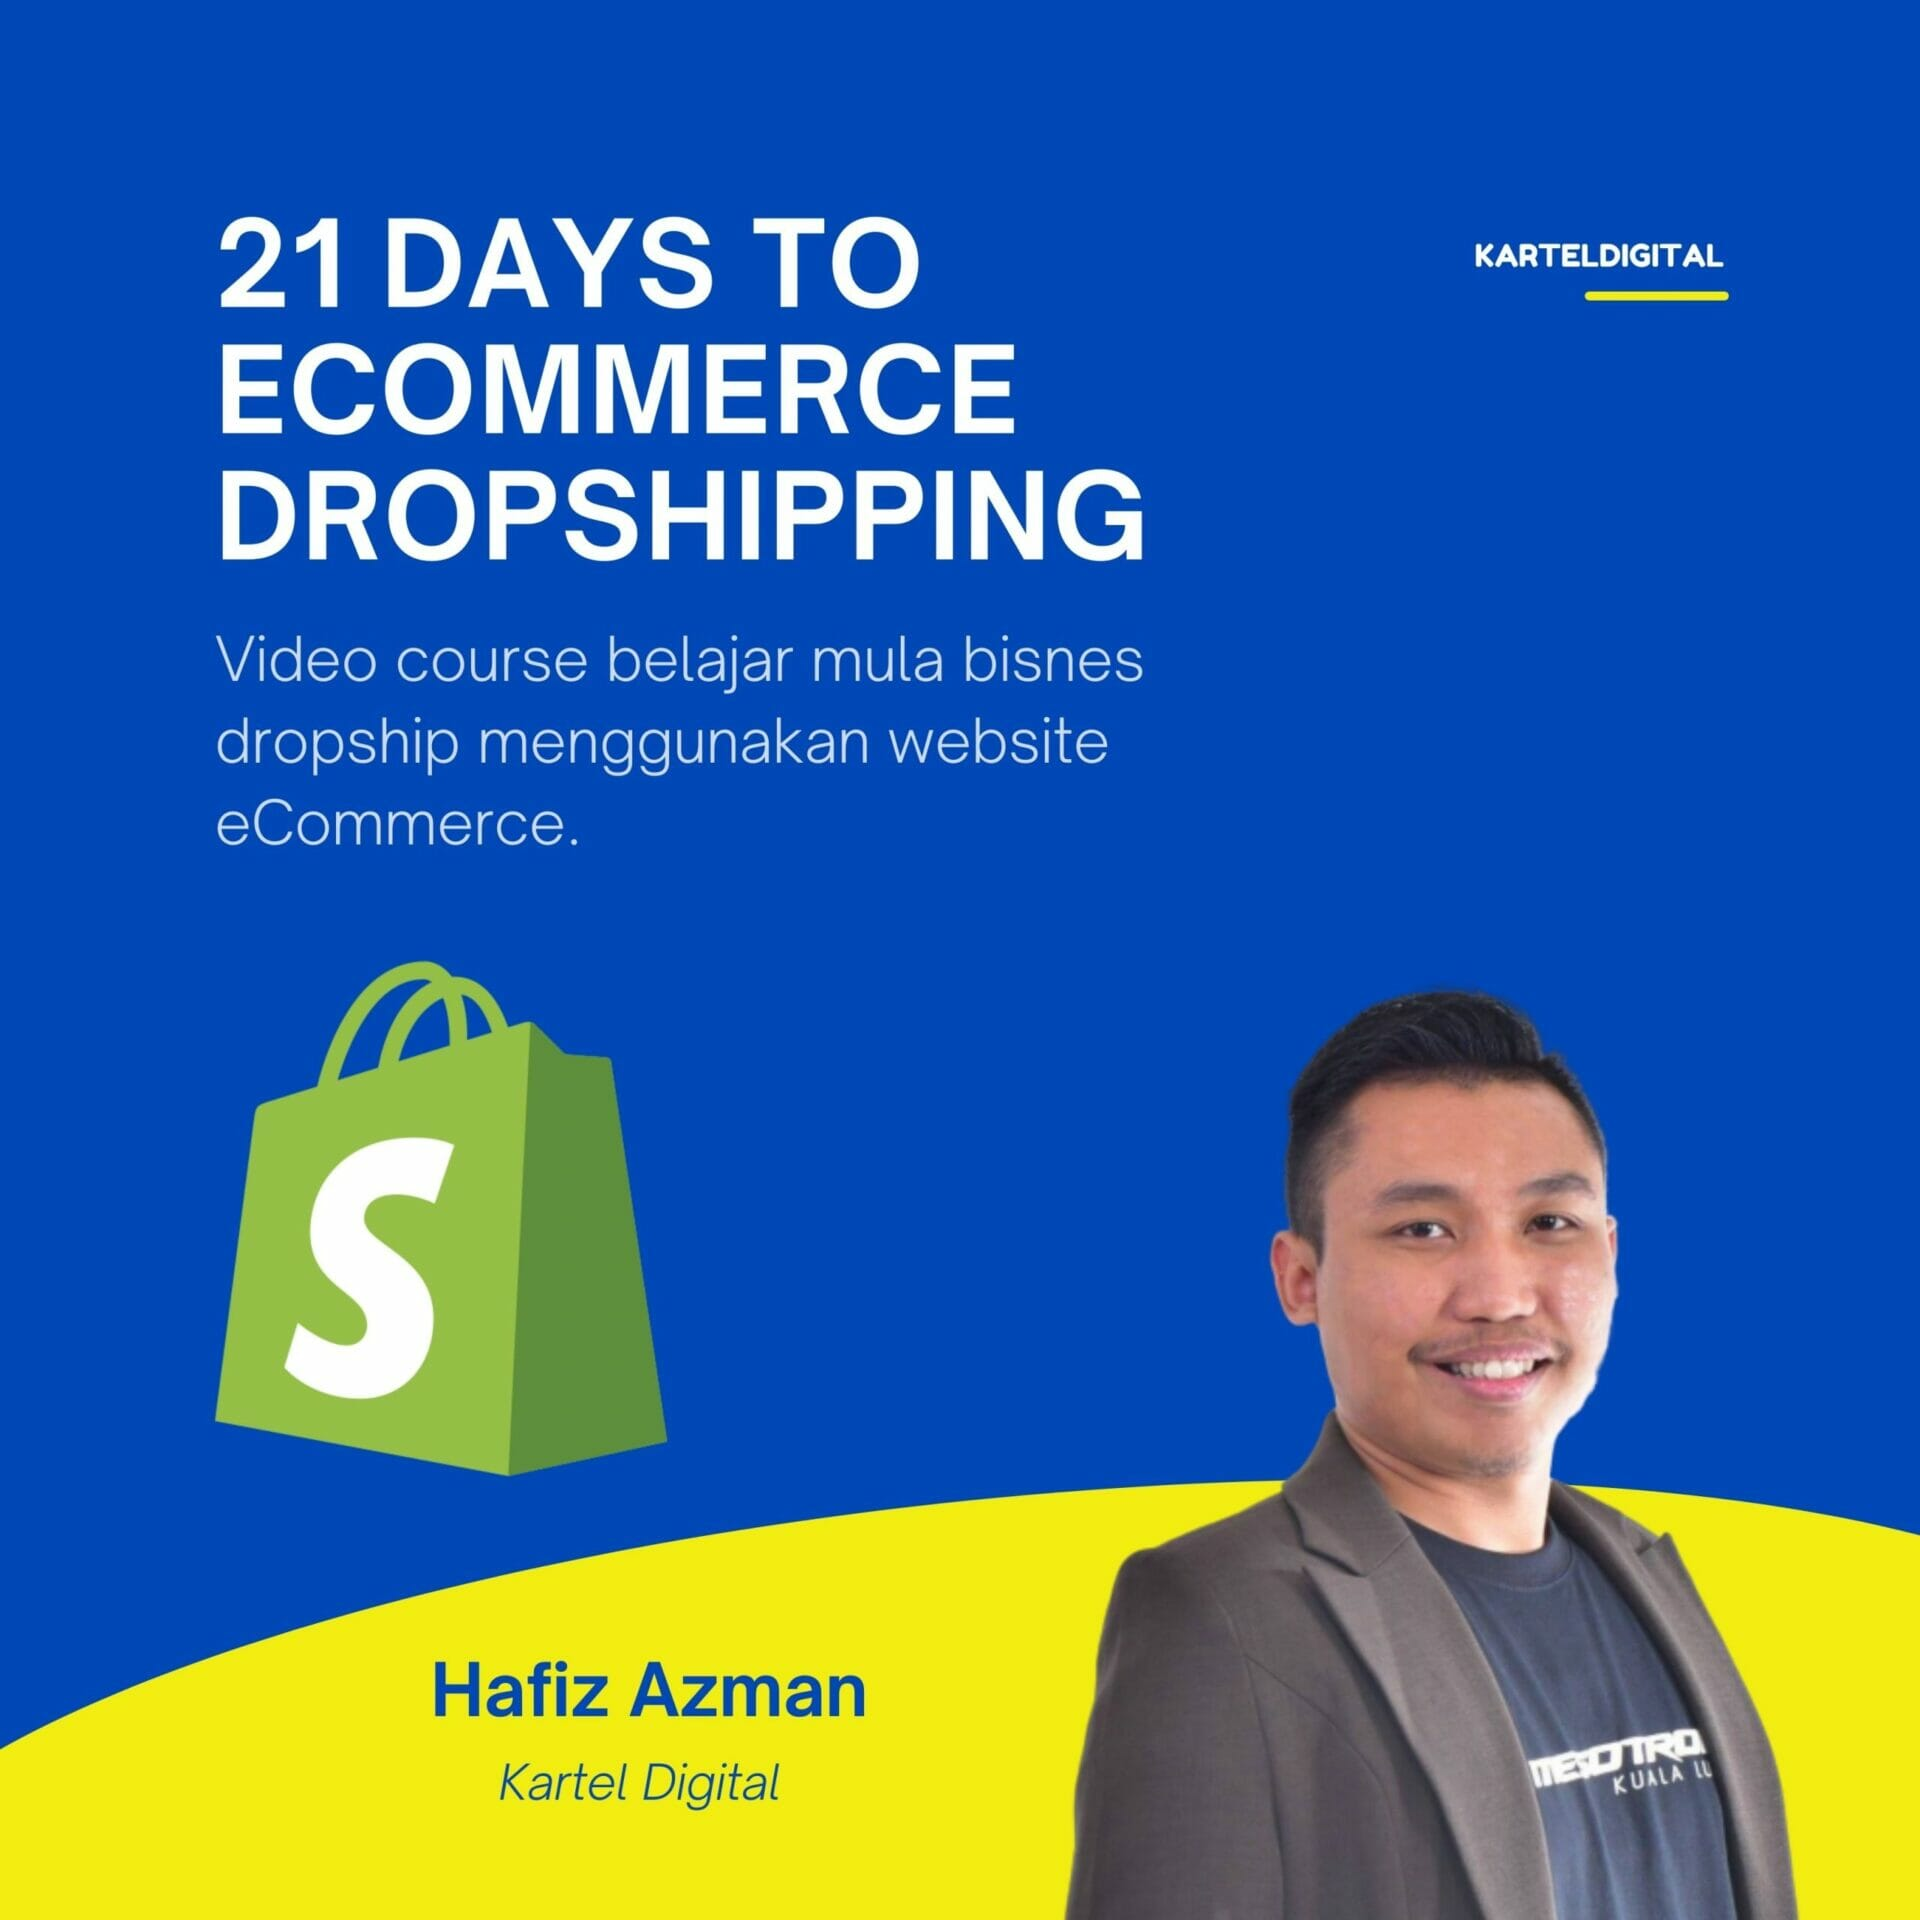 21 days to ecommerce dropshipping dropship kartel